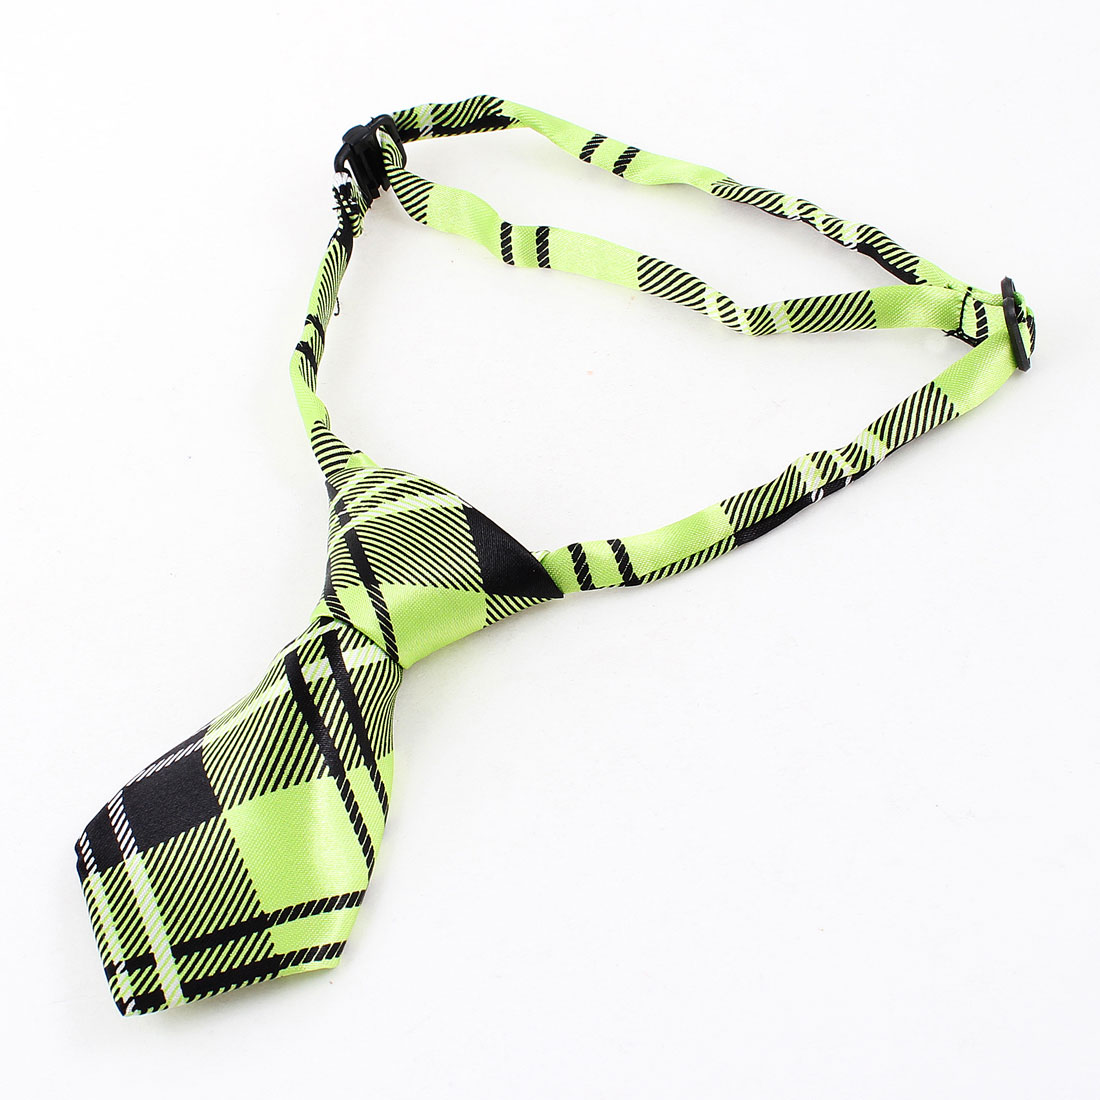 Black Green Check Print Adjustable Cat Pet Adorable Grooming Tie Necktie